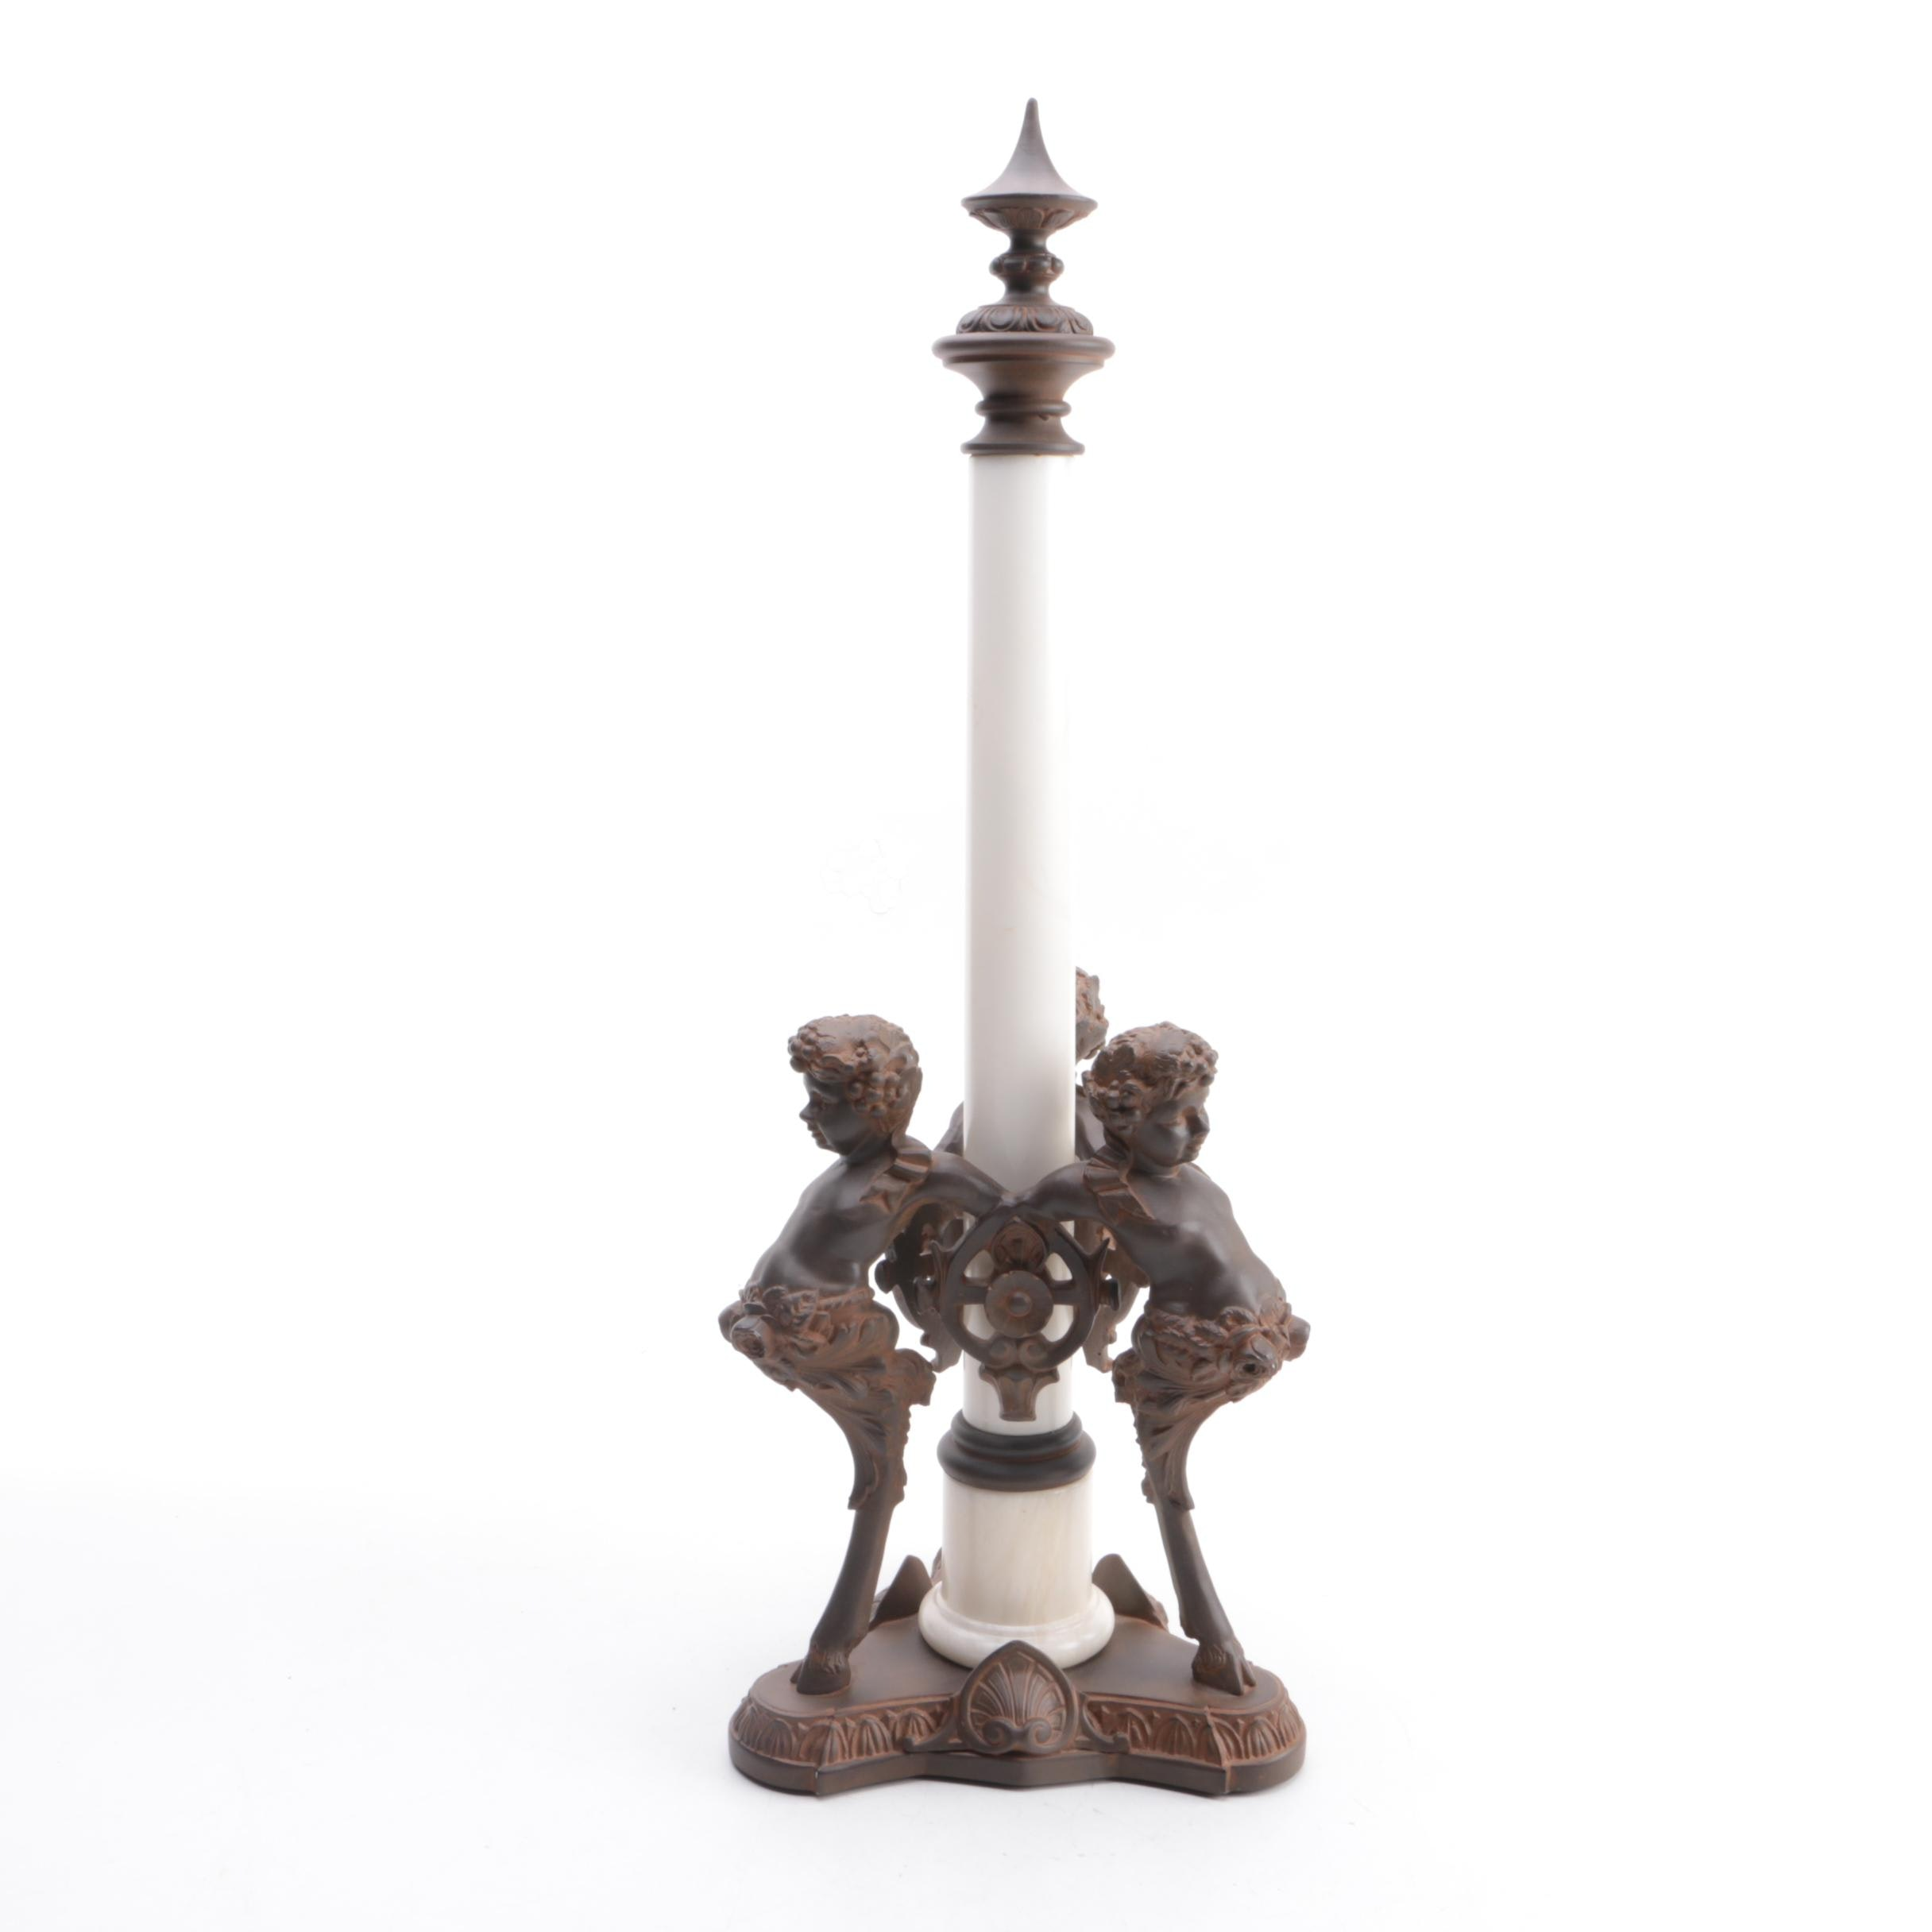 Decorative Empire Style Cast Metal and Alabaster Finial with Faun Accents